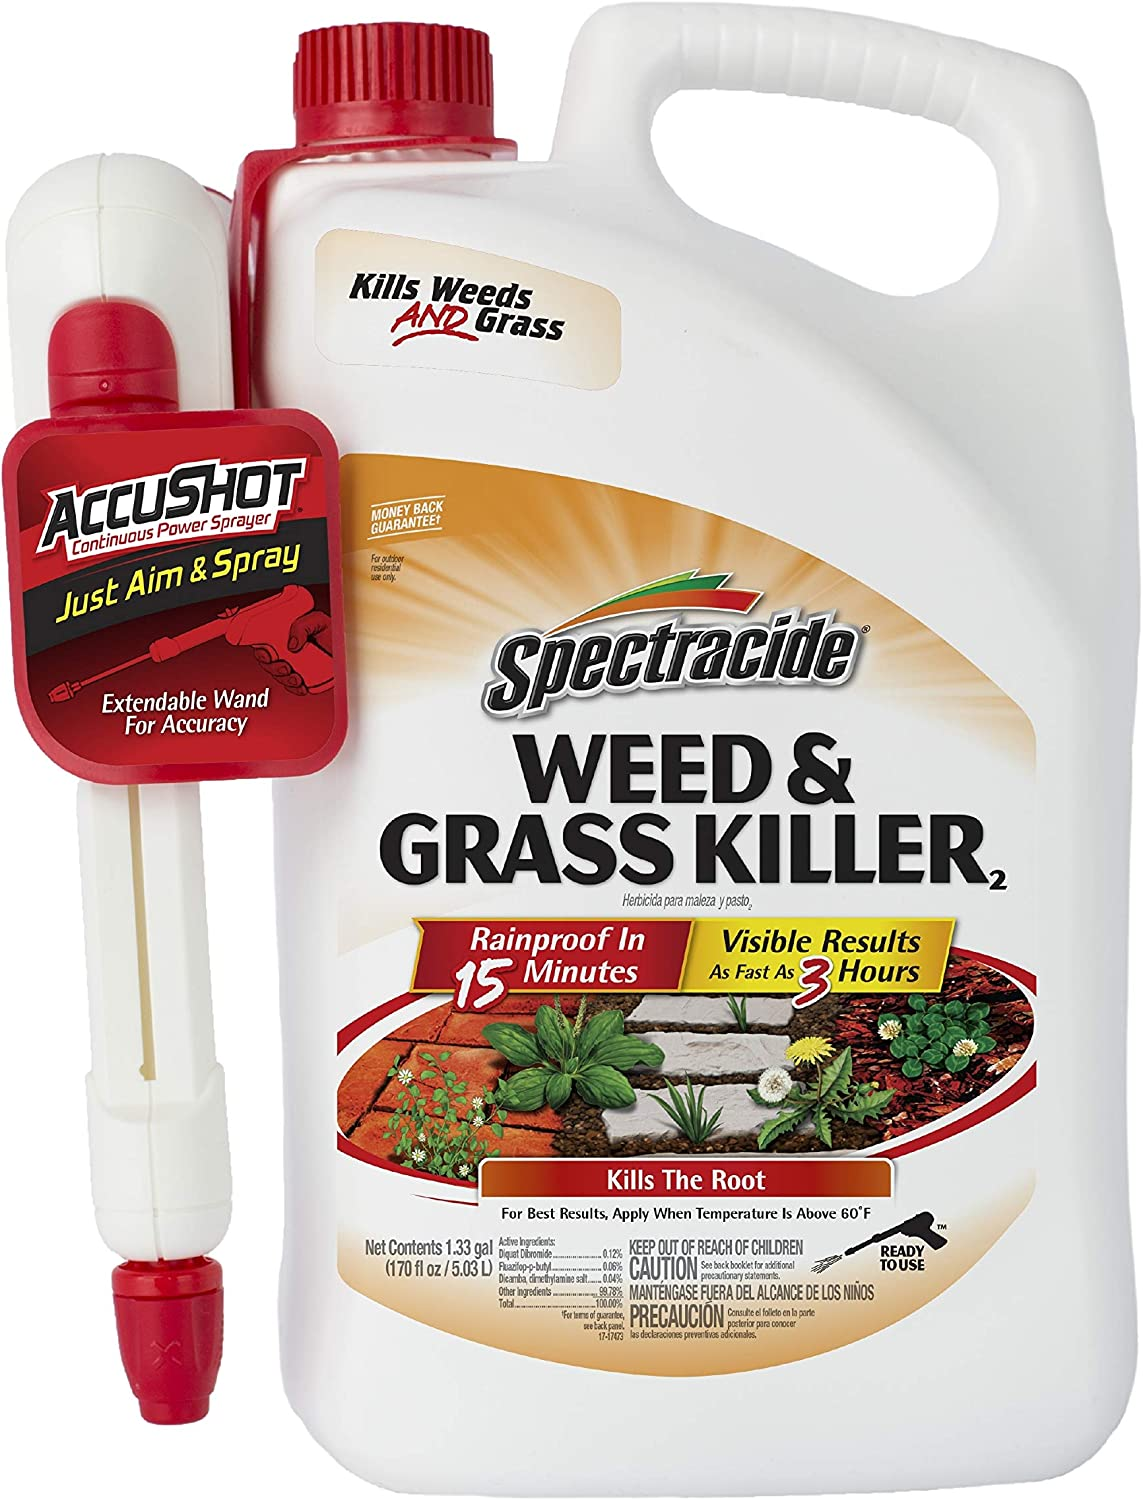 Spectracide Weed & Grass Killer2, AccuShot Sprayer, 1.33-Gallon